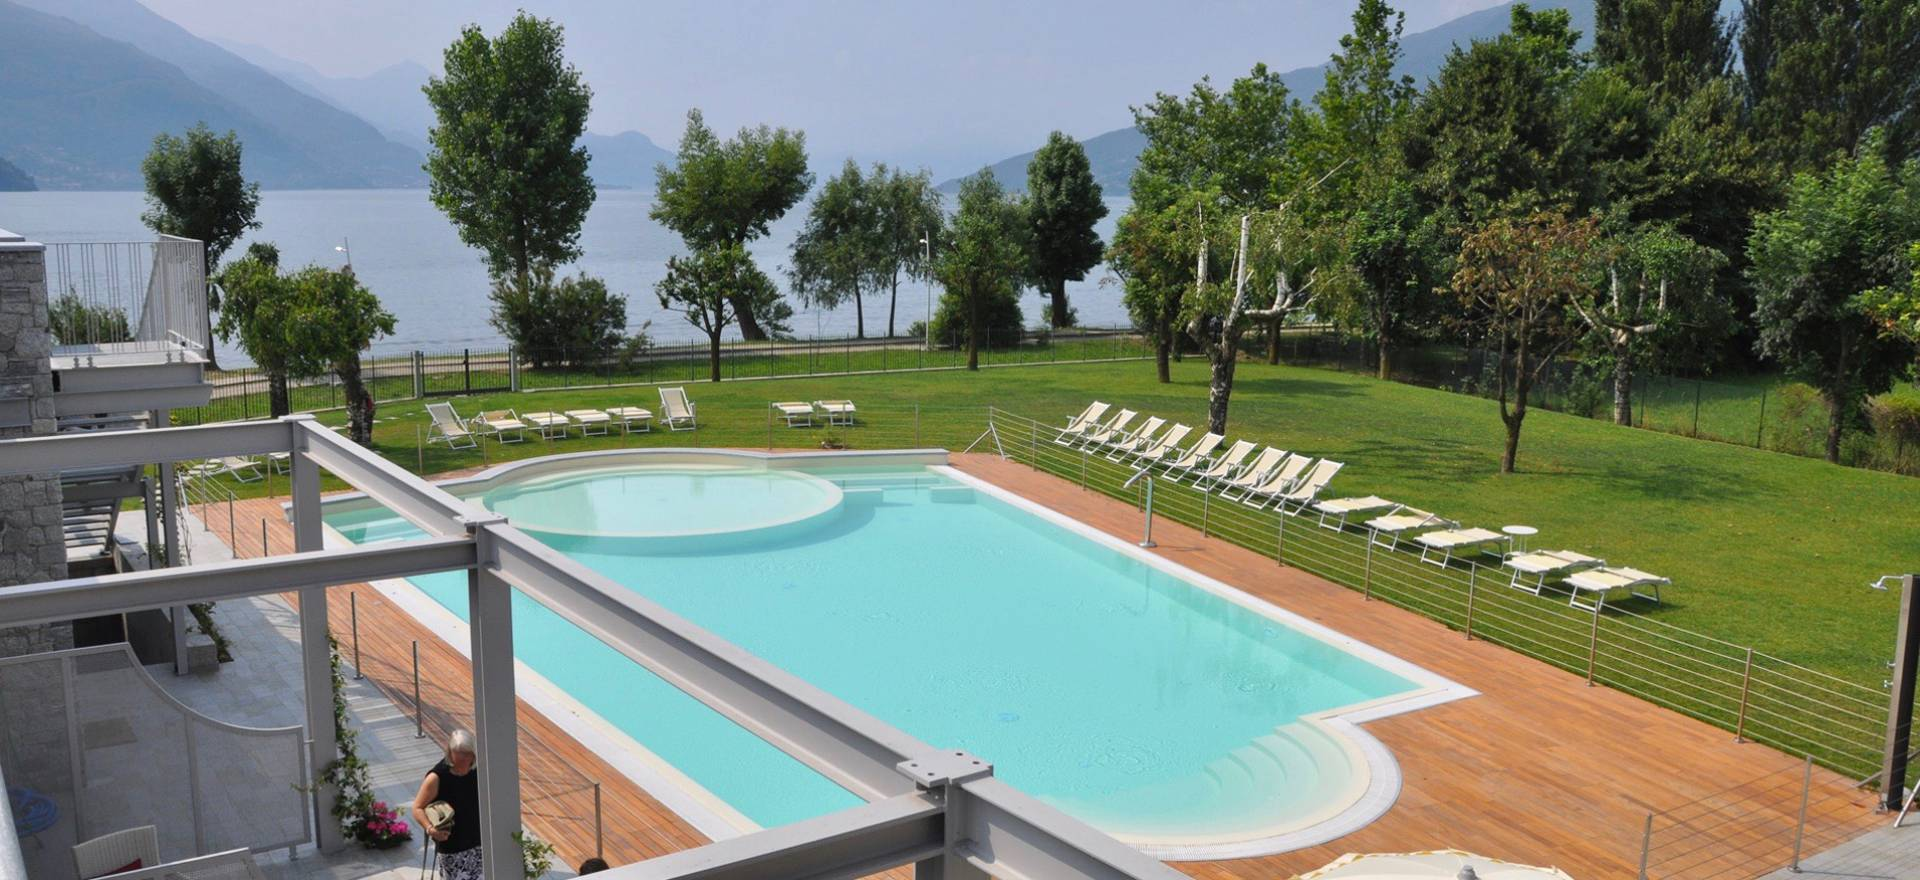 Agriturismo Lake Como and Lake Garda Small country hotel in wonderful location on Lake Como